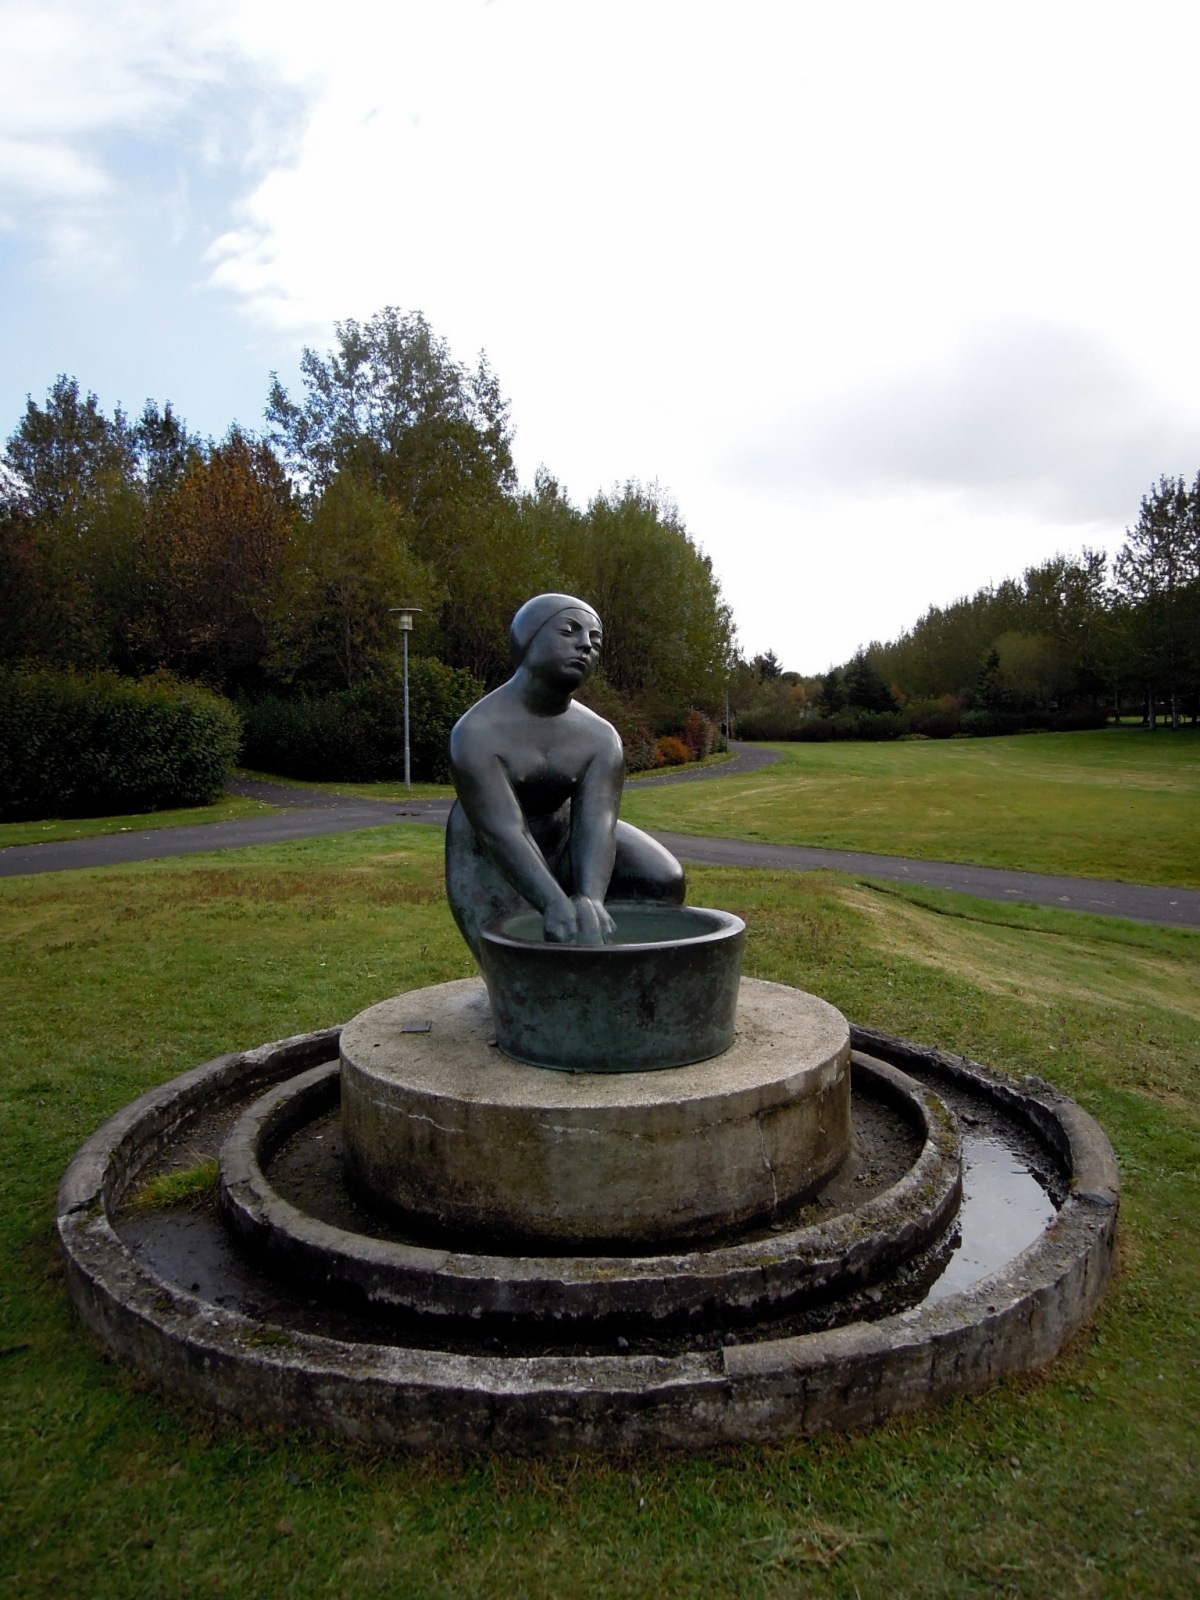 Sculpture of a washerwoman